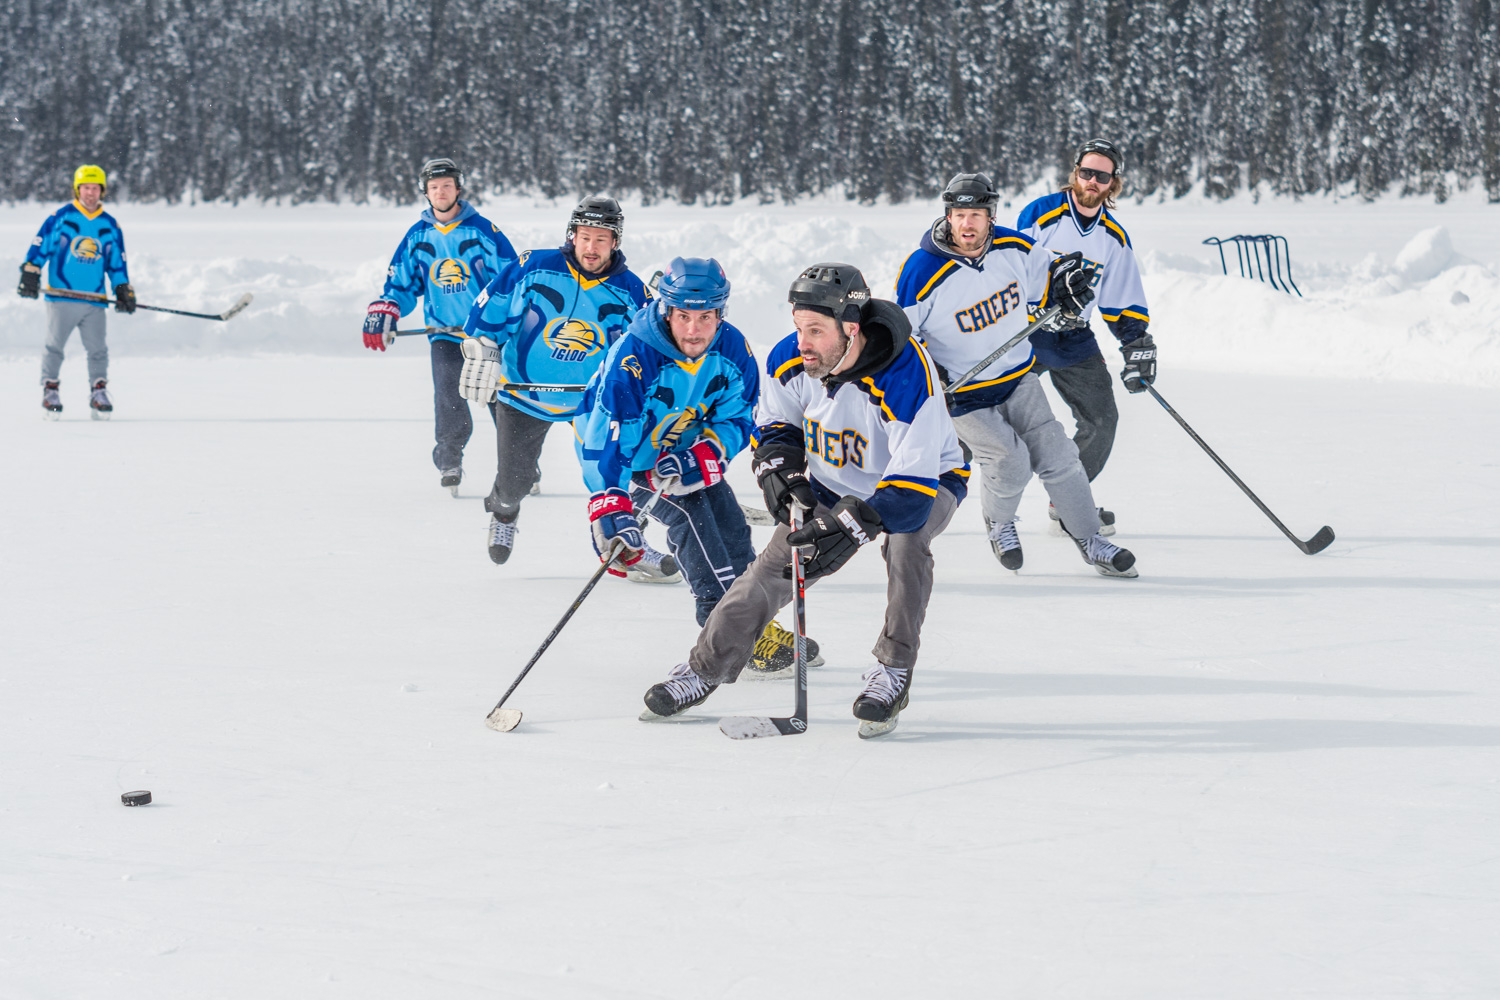 The semi finals of the Lake Louise pond hockey tournament. Another one of my favourite photos.